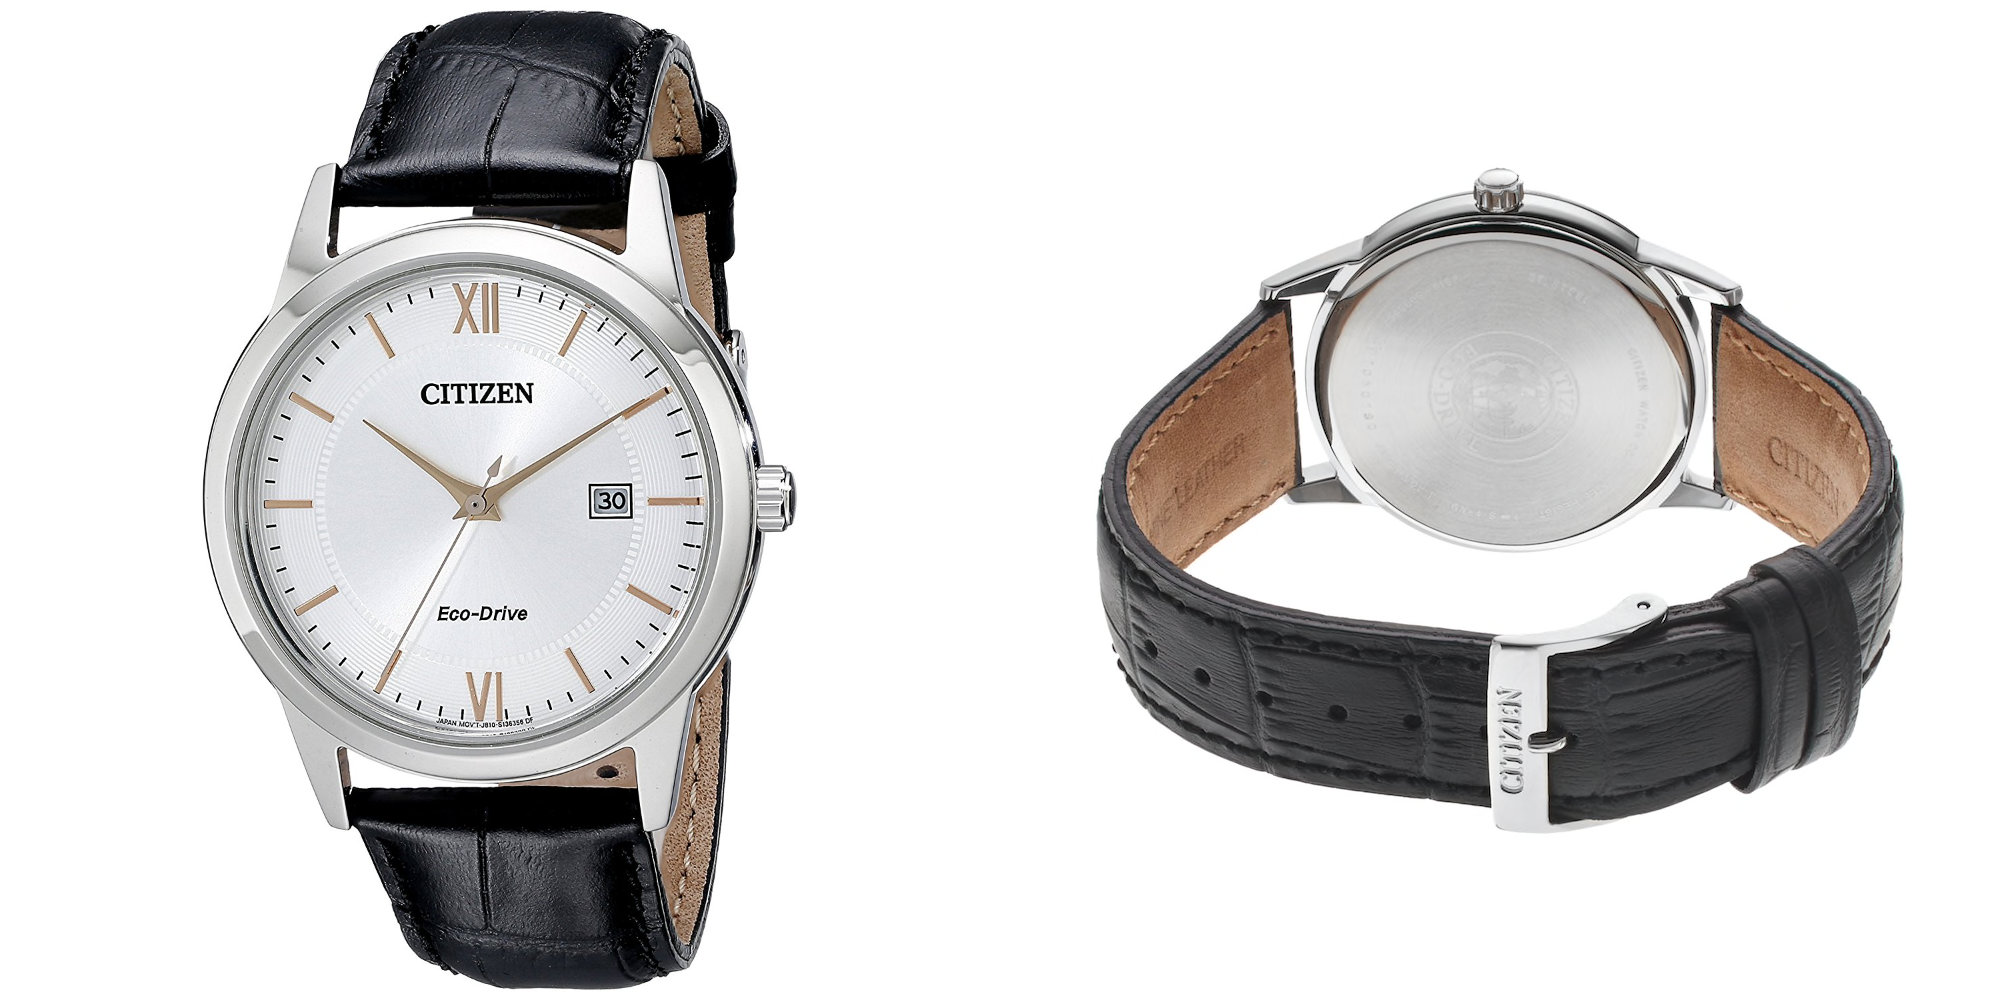 This stainless steel Citizen Eco-Drive Watch is powered by light: $69 at Amazon (Reg. $100+)